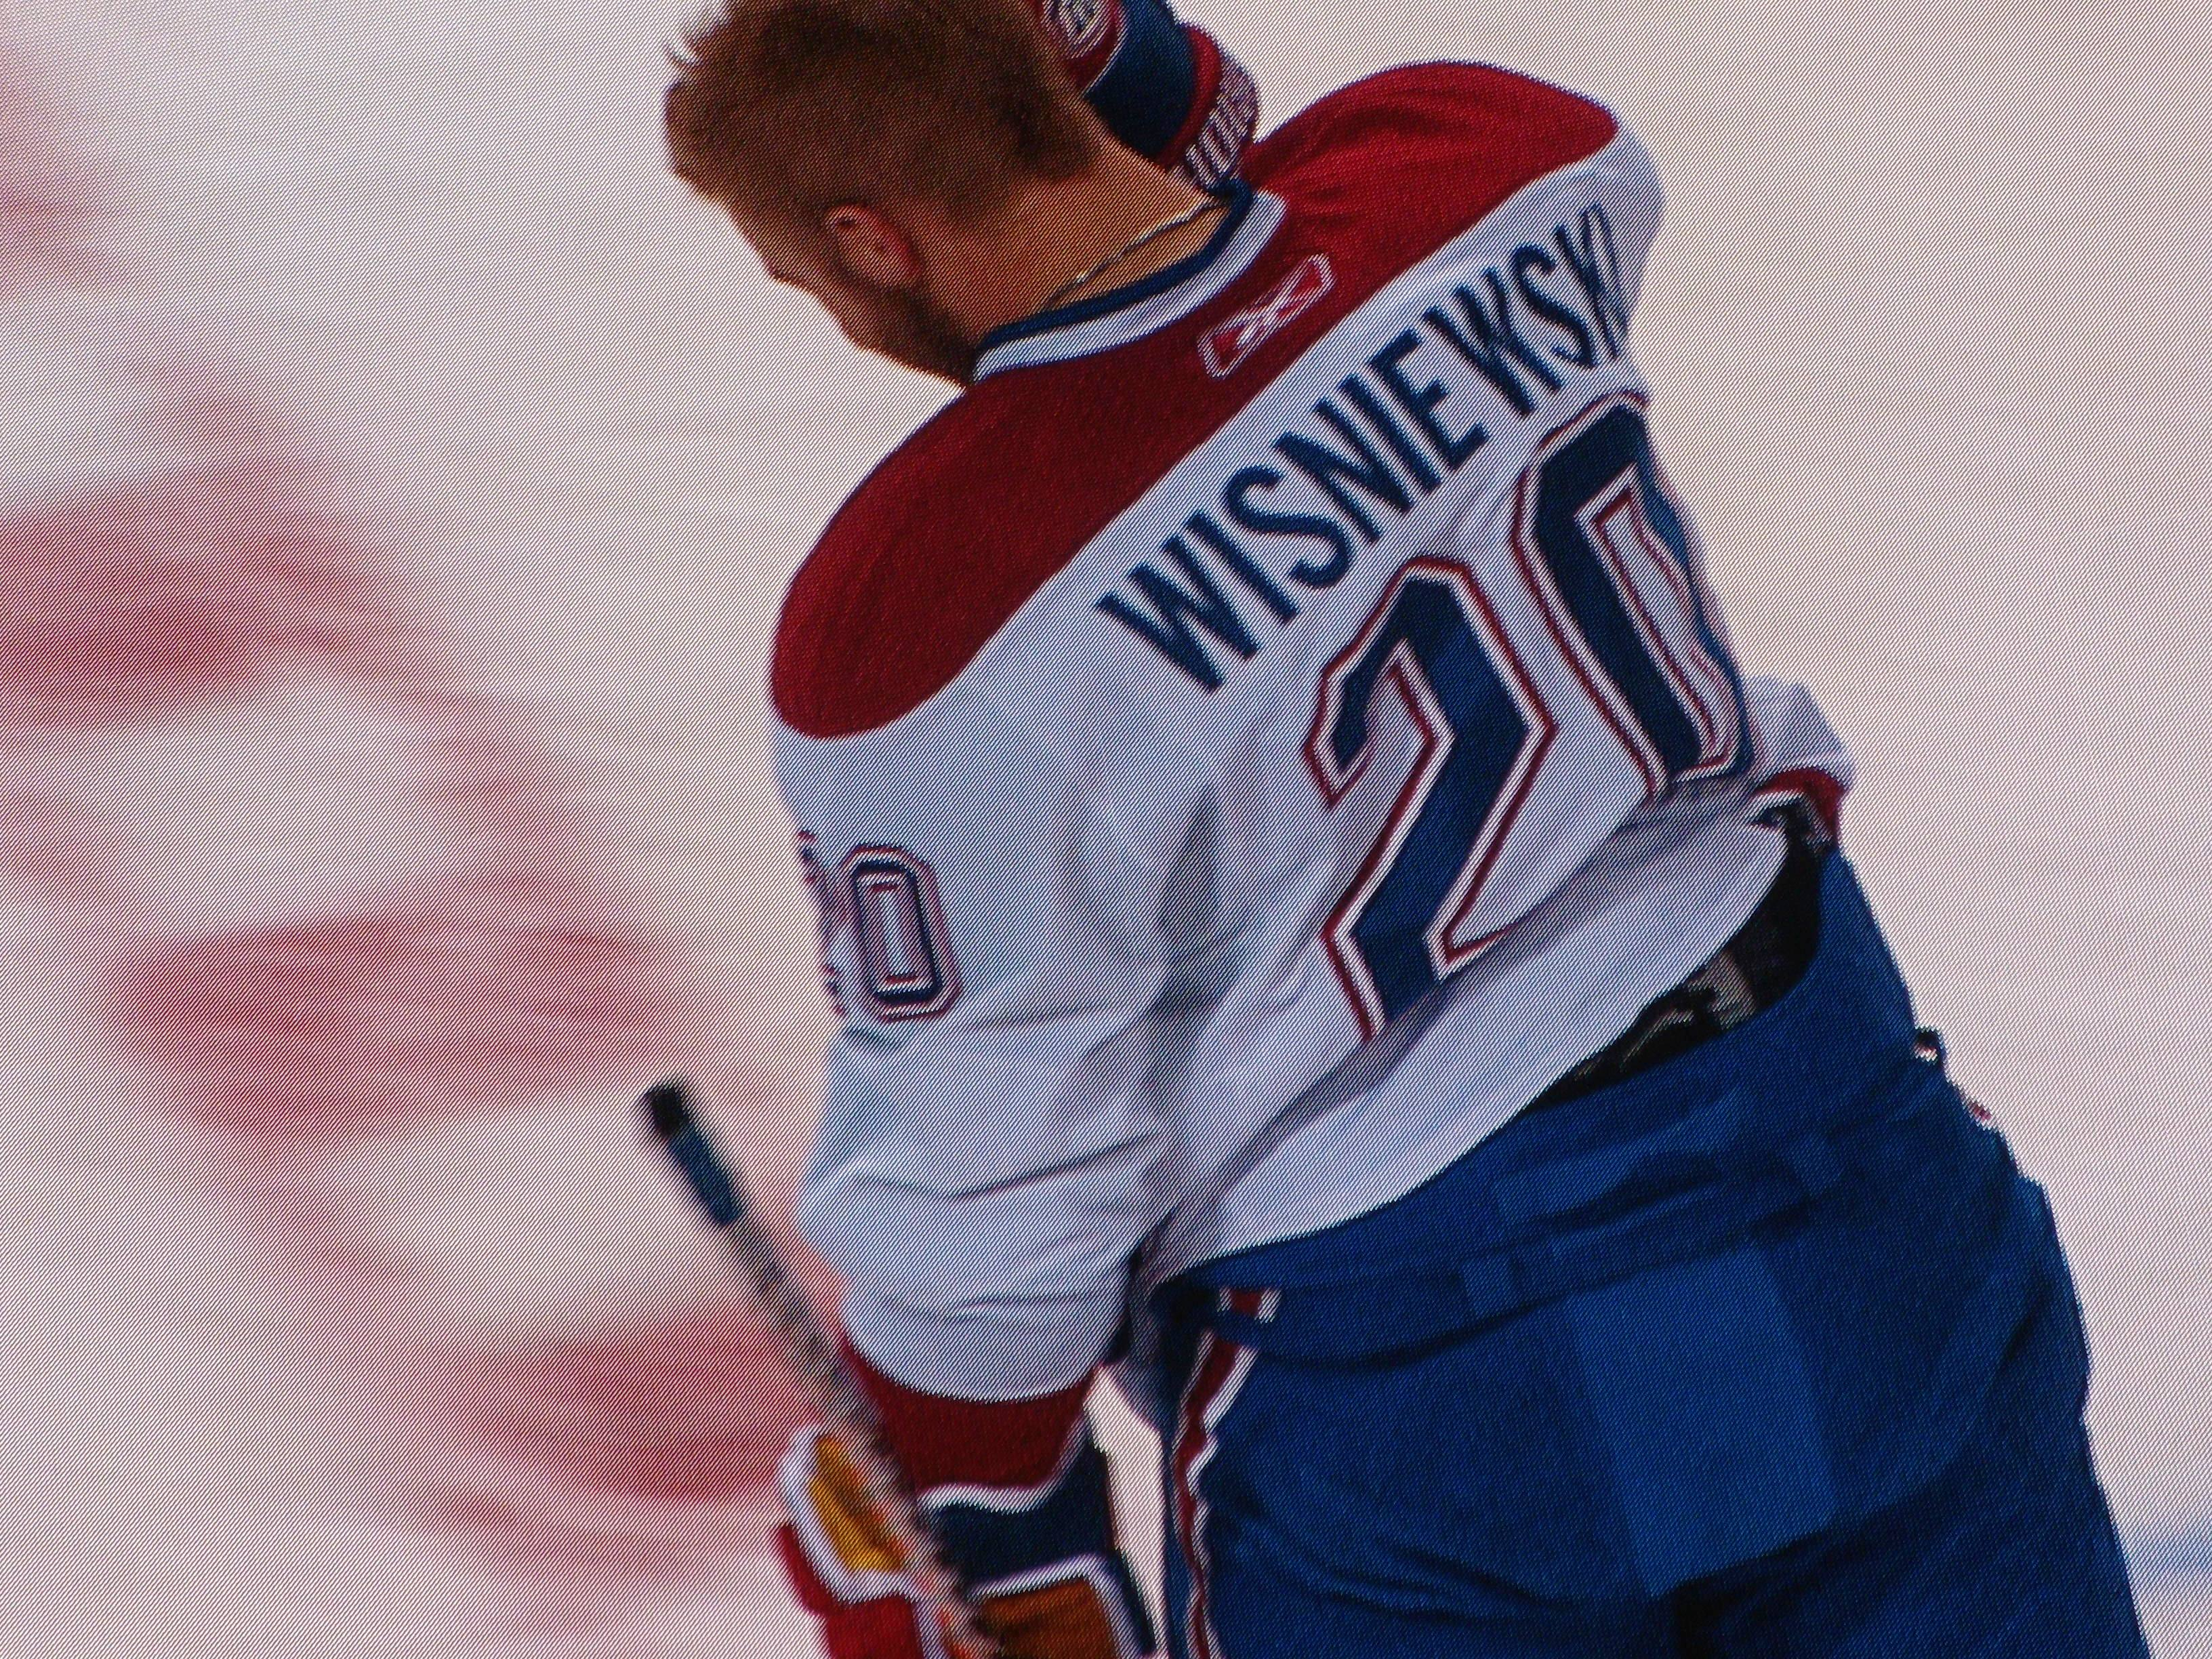 Maniacduhockey, via WikiMedia Commons